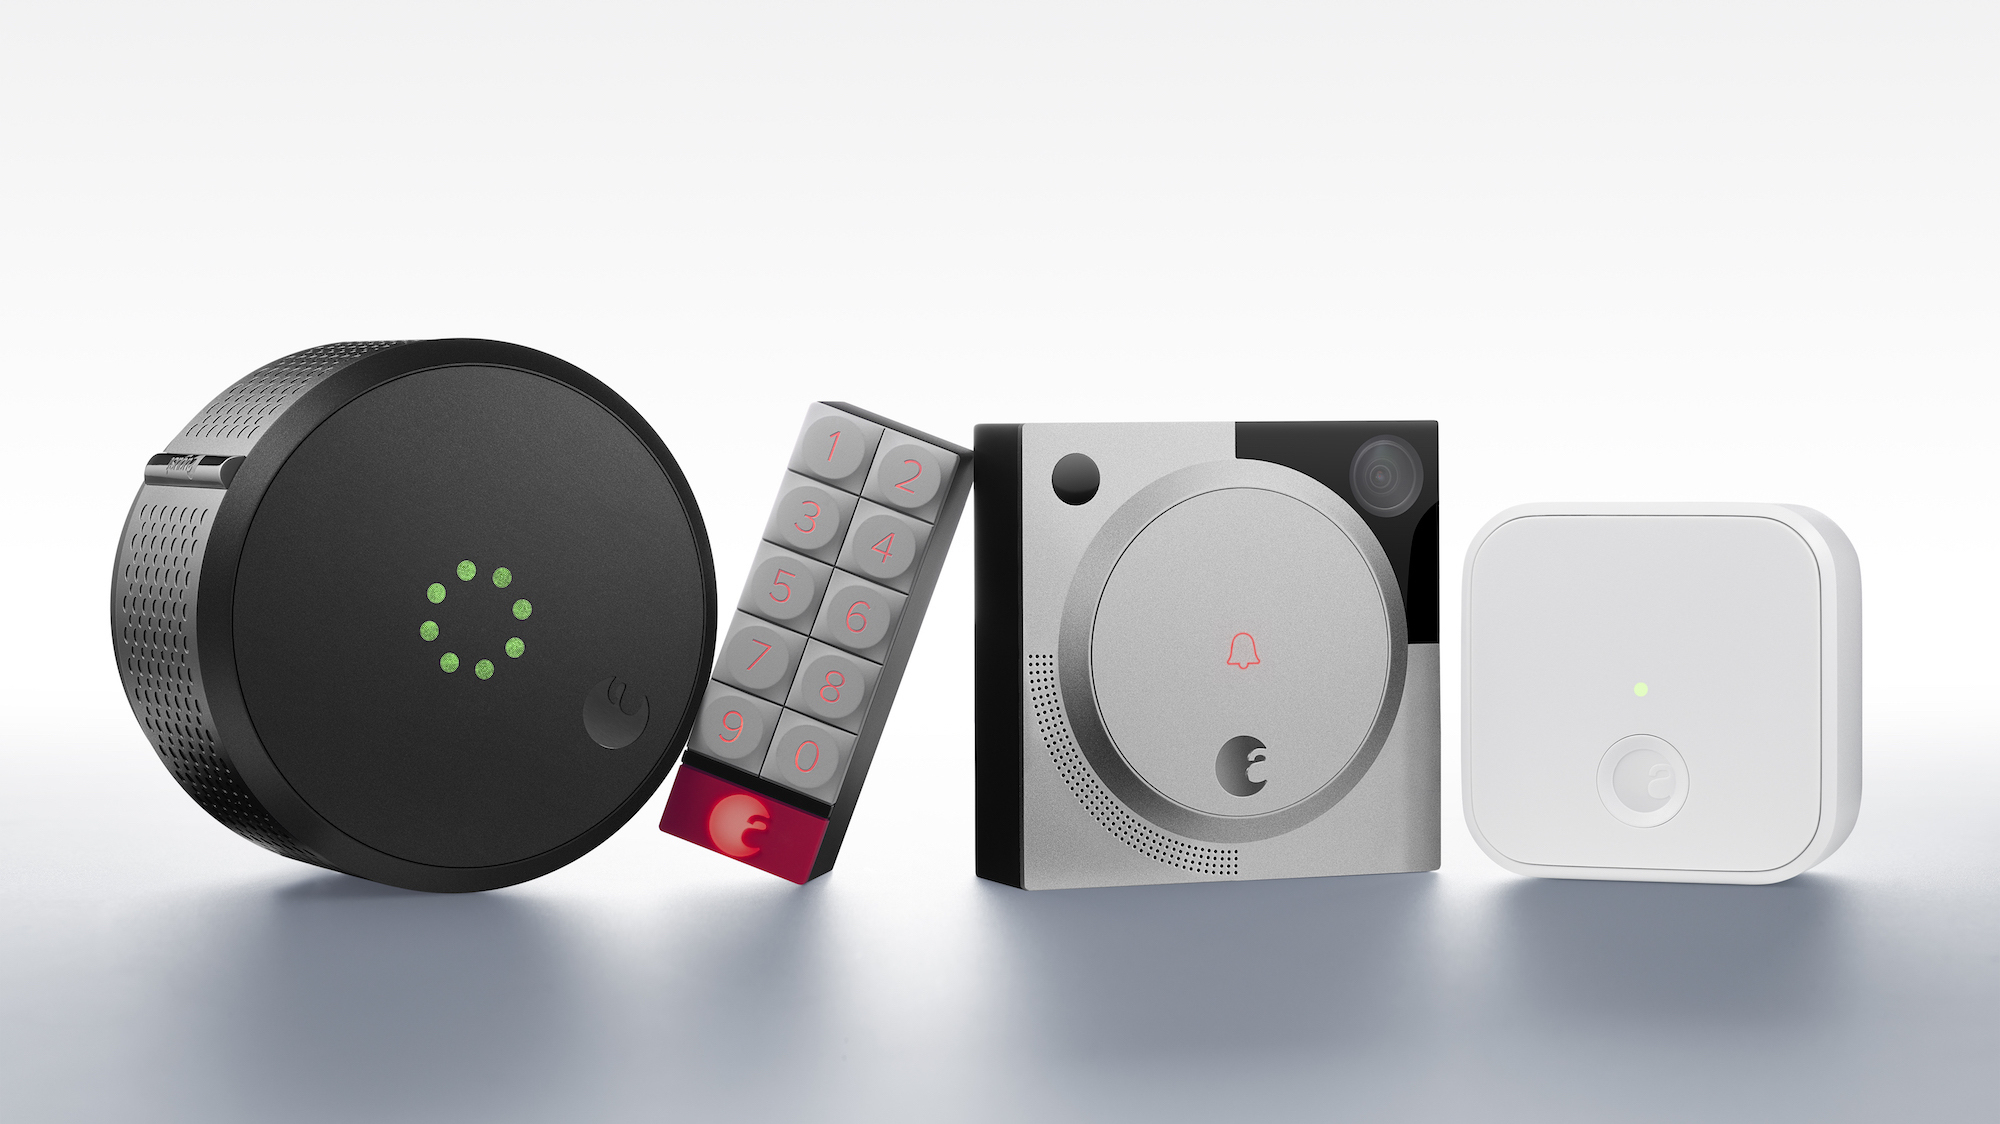 august smart lock vernetztes schloss mit homekit unterst tzung mac i. Black Bedroom Furniture Sets. Home Design Ideas